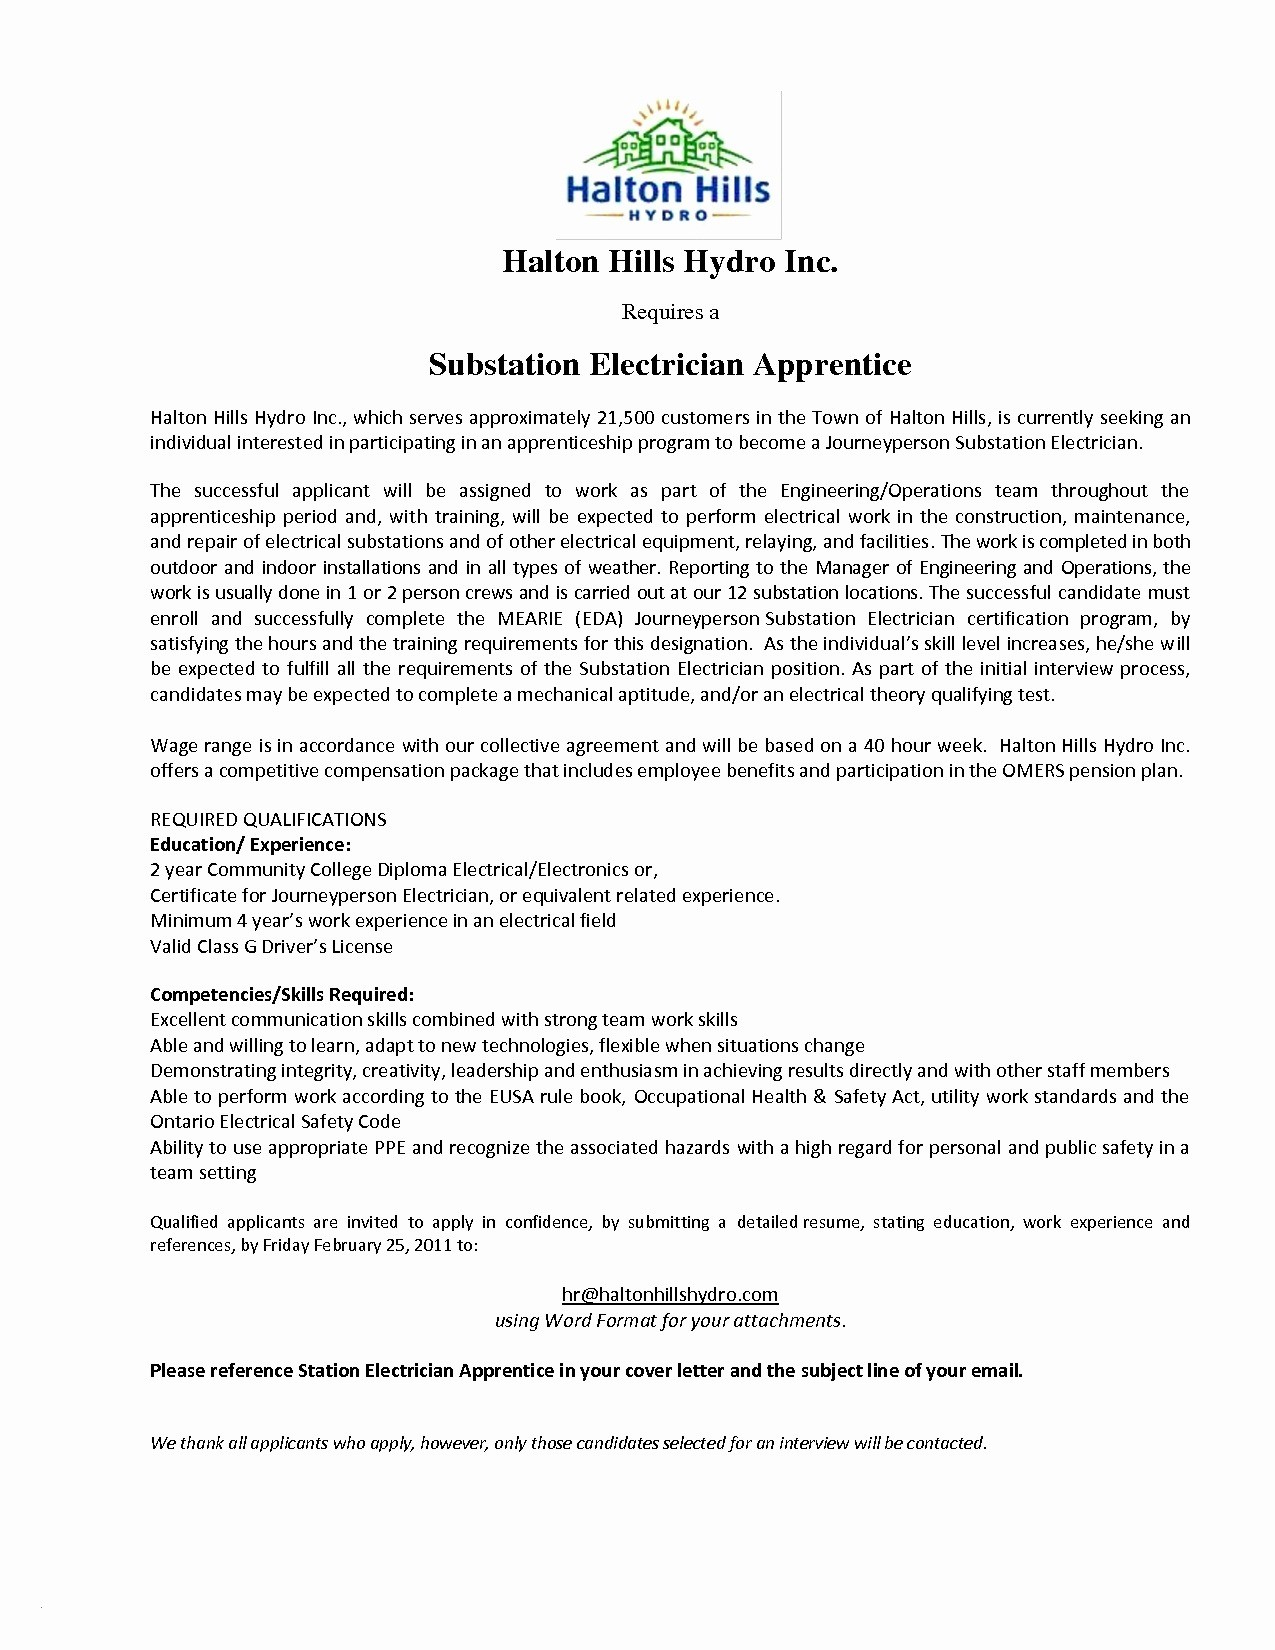 Resumes for Electrician Apprentice - Electrician Apprentice Resume Fresh Electrician Resume Examples